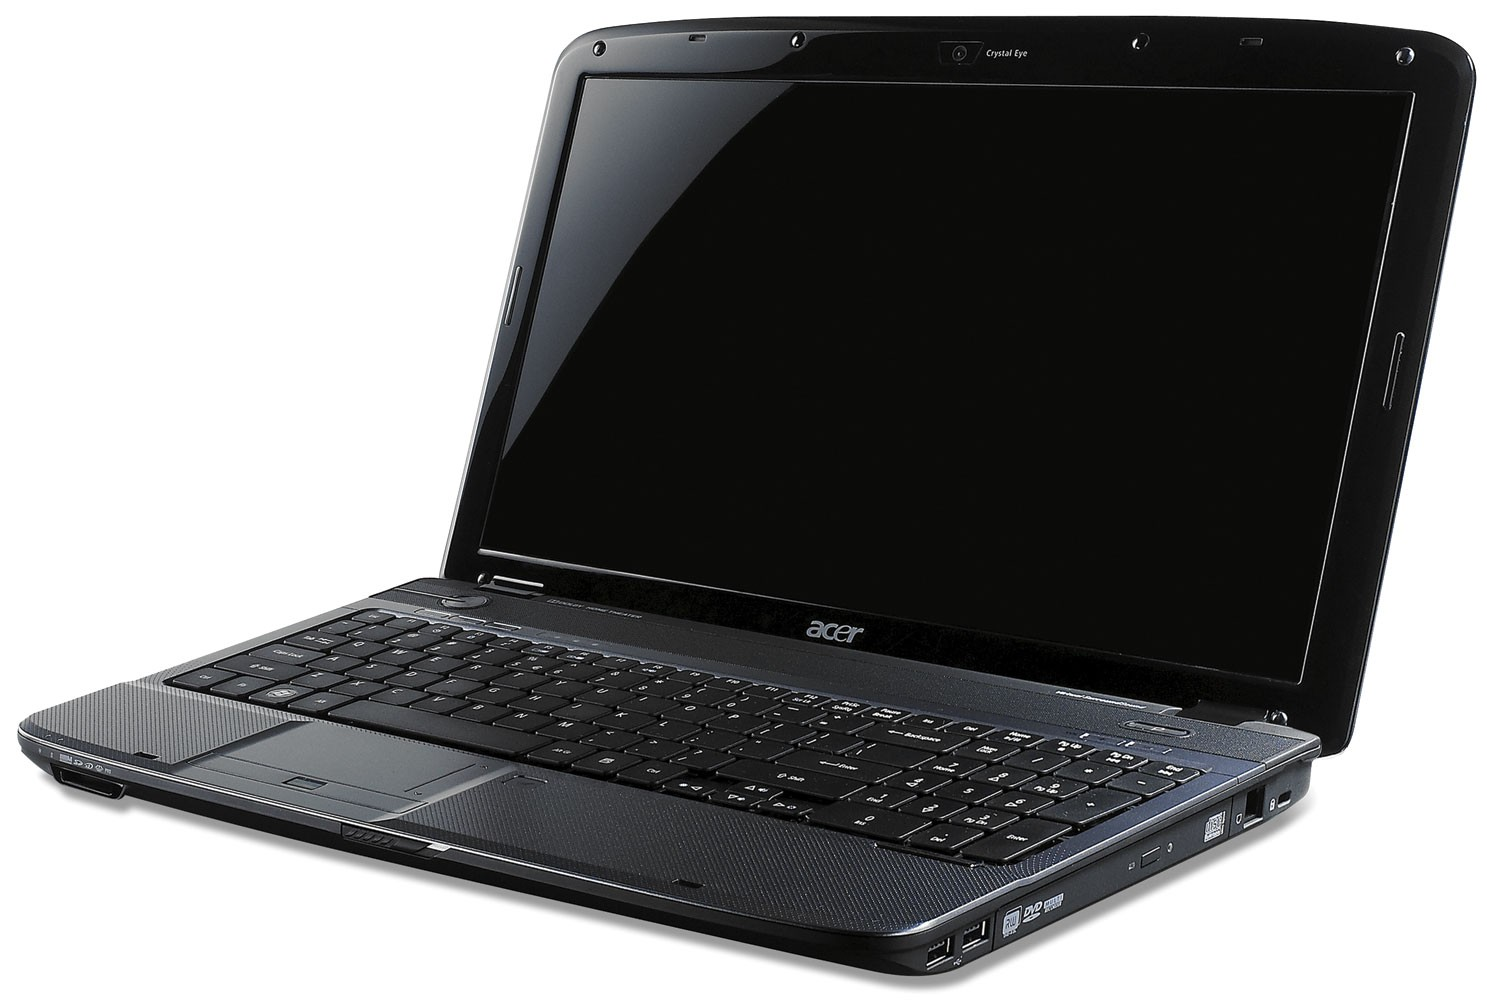 DOWNLOAD DRIVERS: ACER ASPIRE 5542G